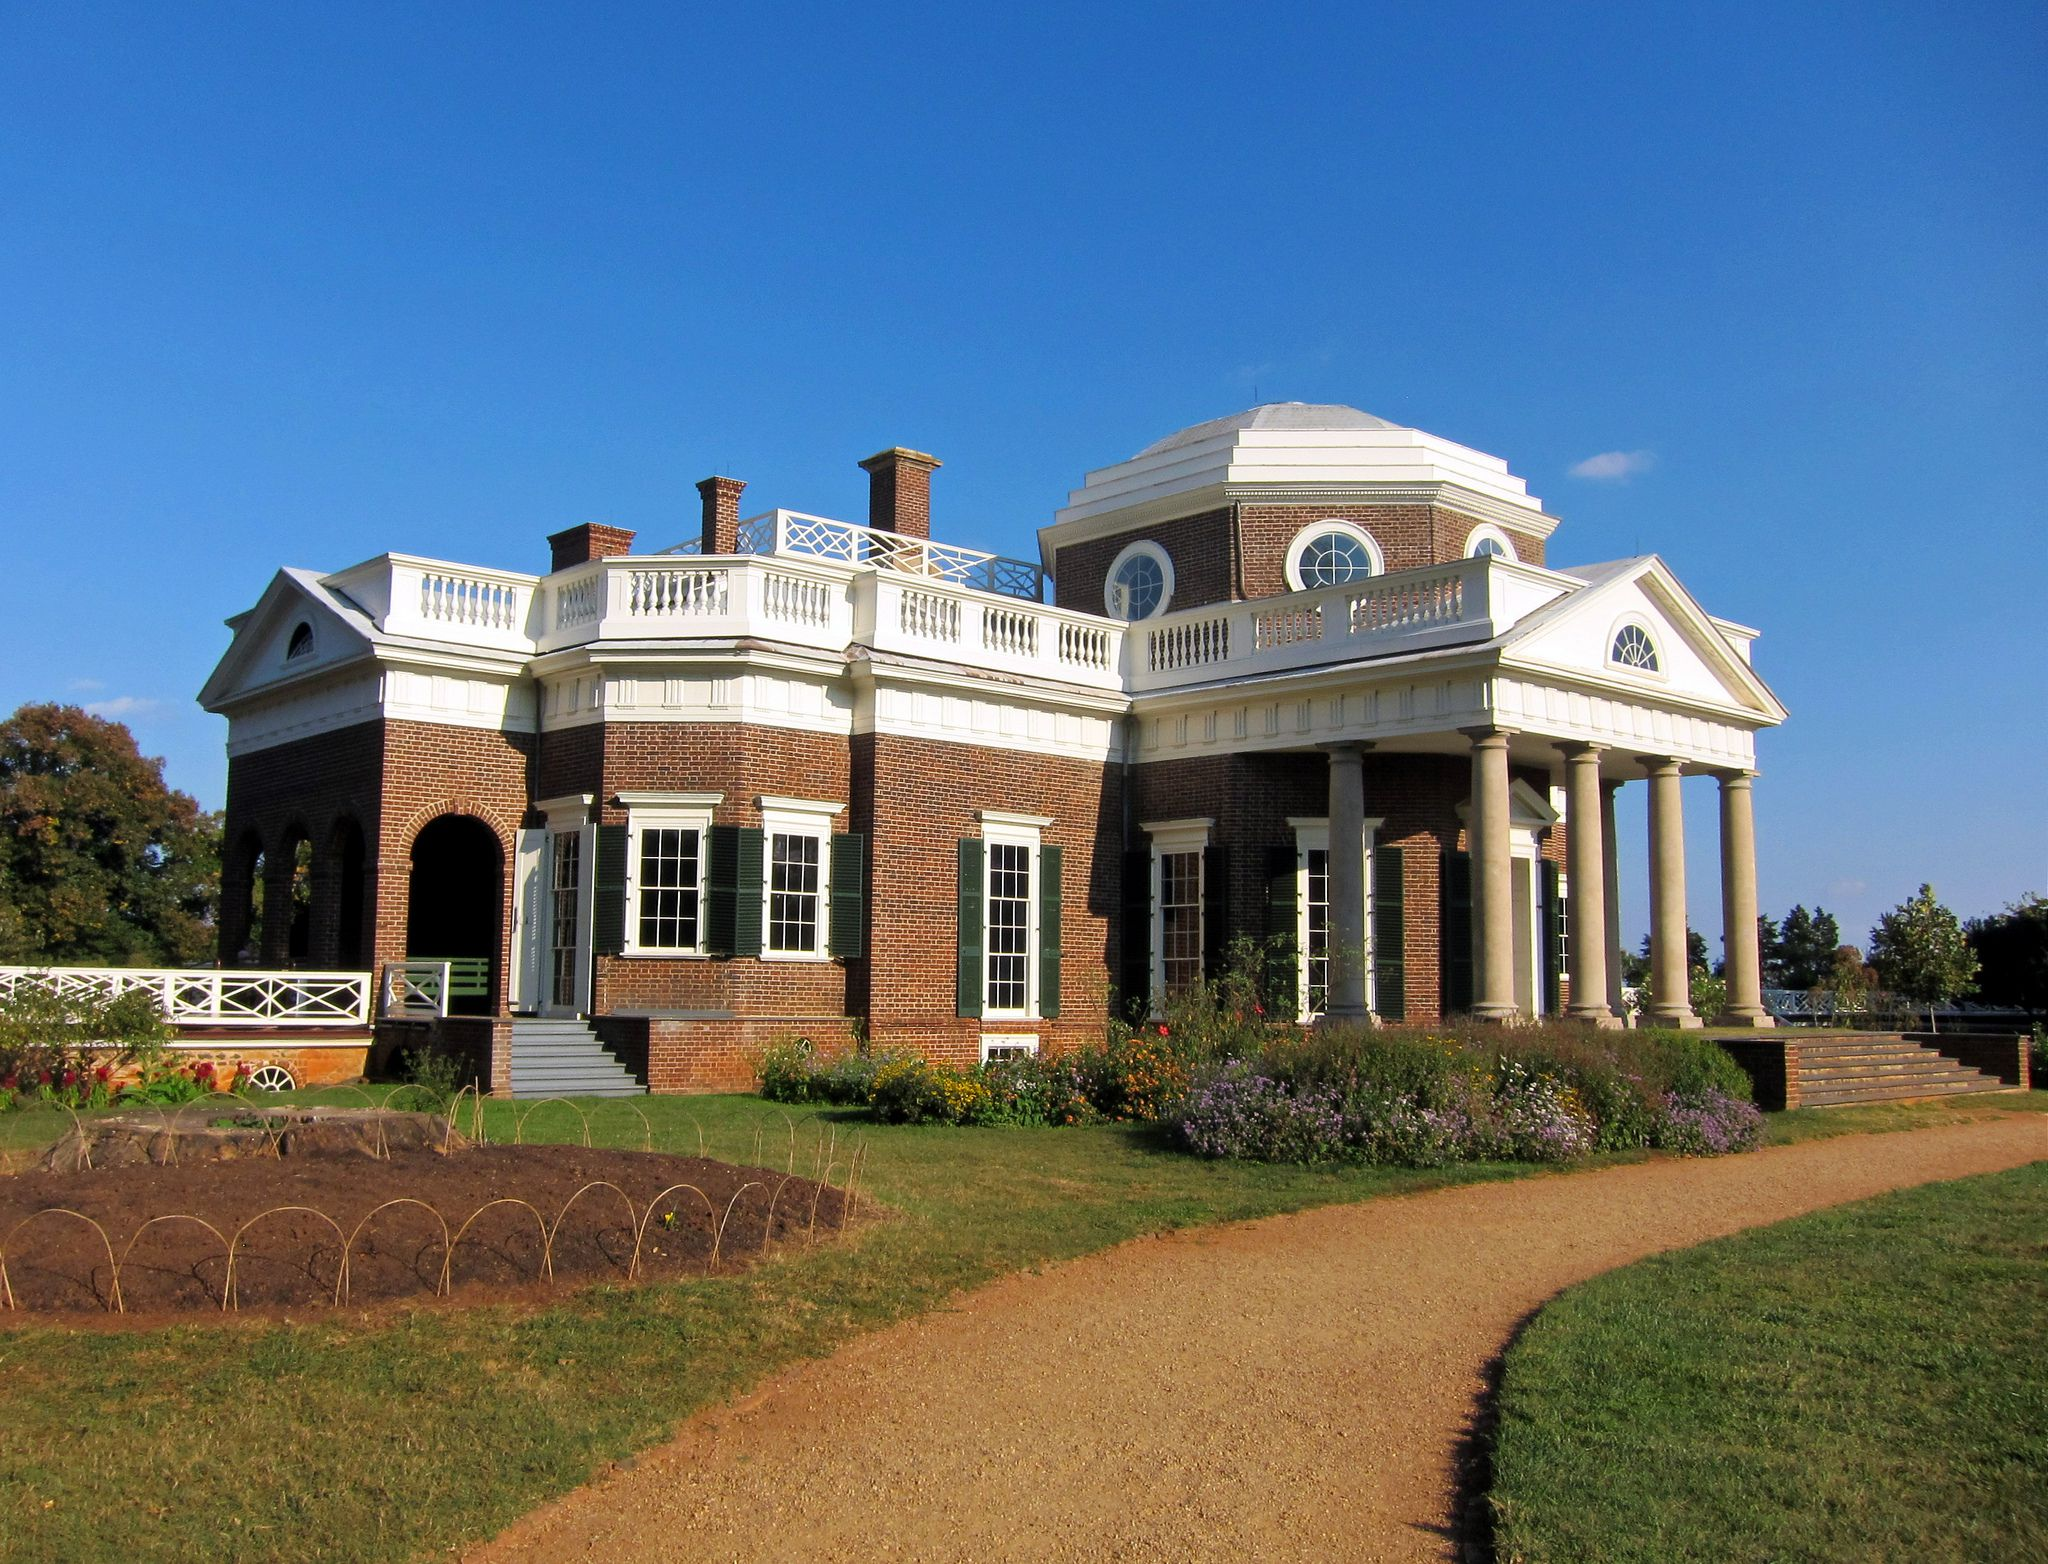 A Complete Guide to Monticello: The Historic Home of Thomas Jefferson